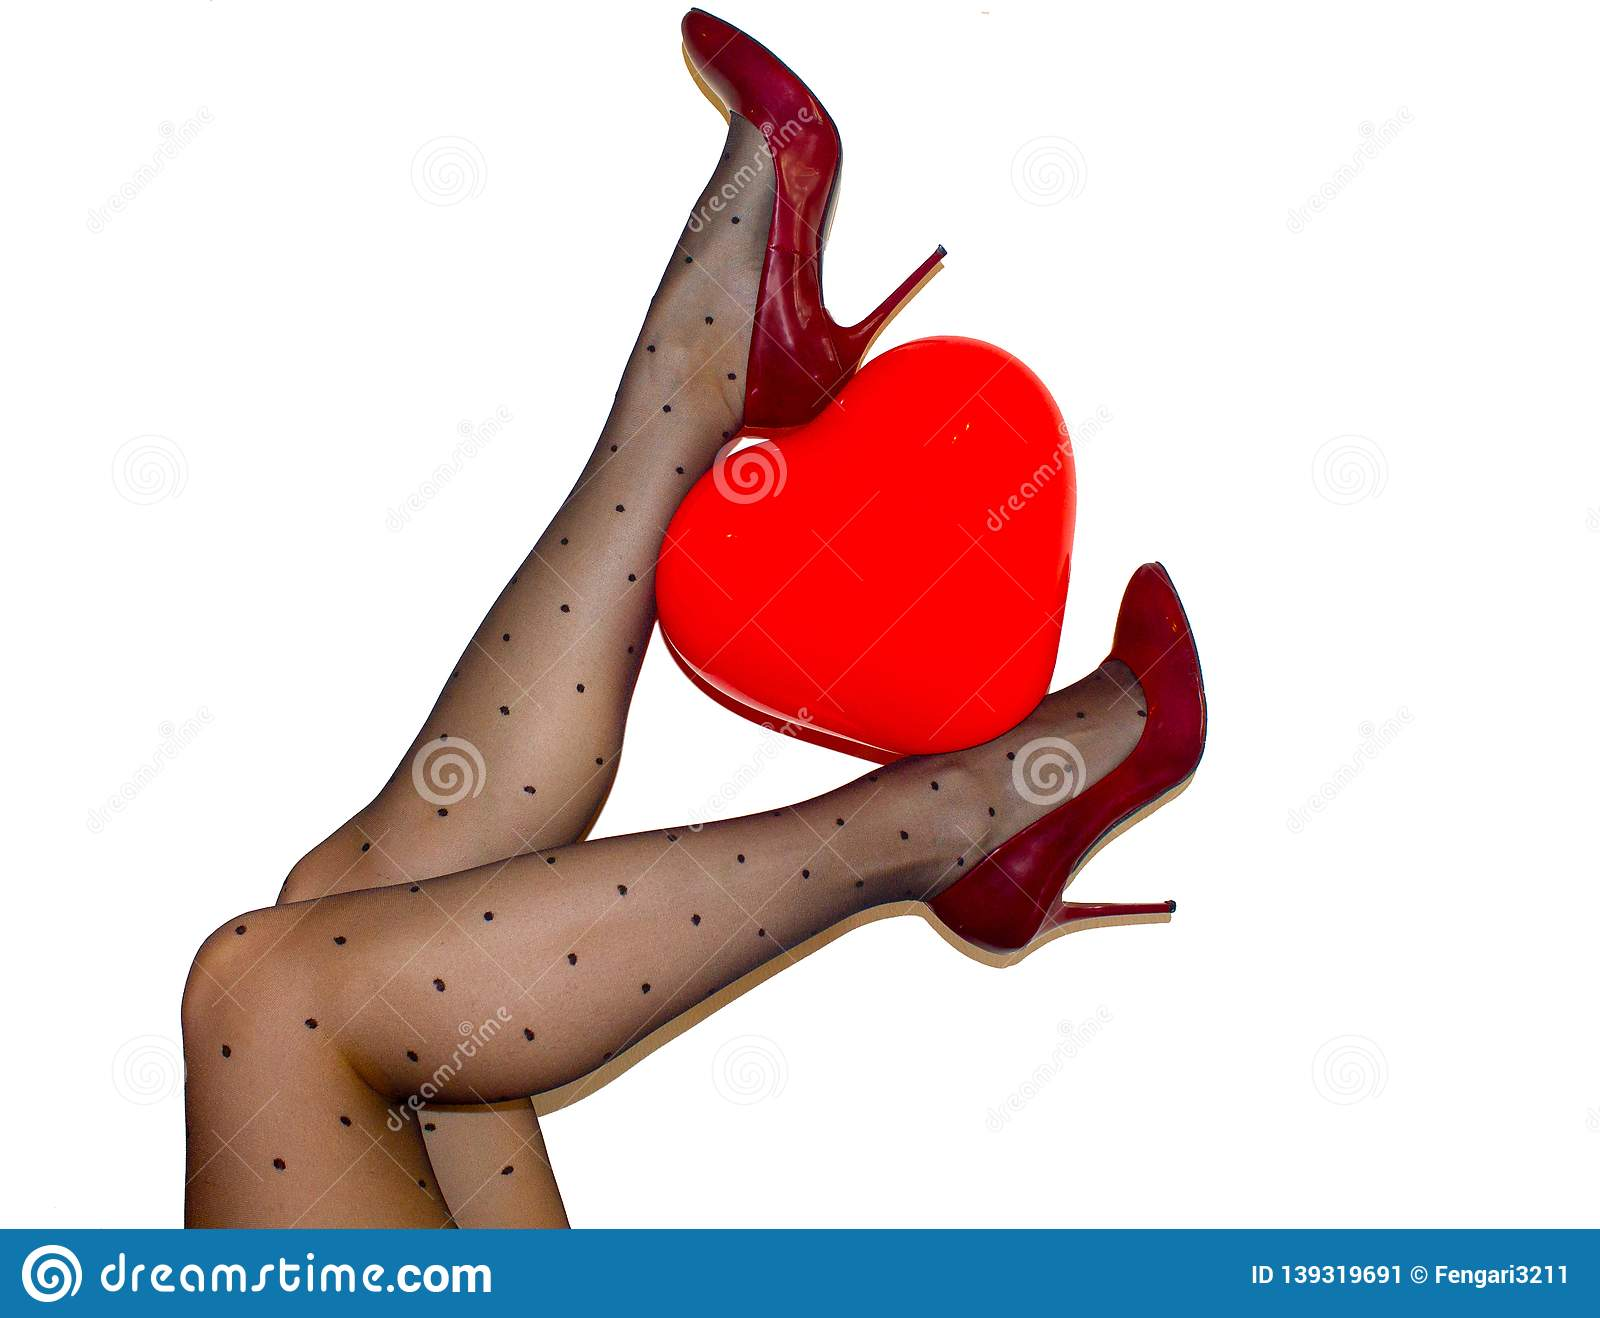 88b3d71c14ab0 Womens legs in black tights and maroon high heel shoes holding red heart  ballon on white background